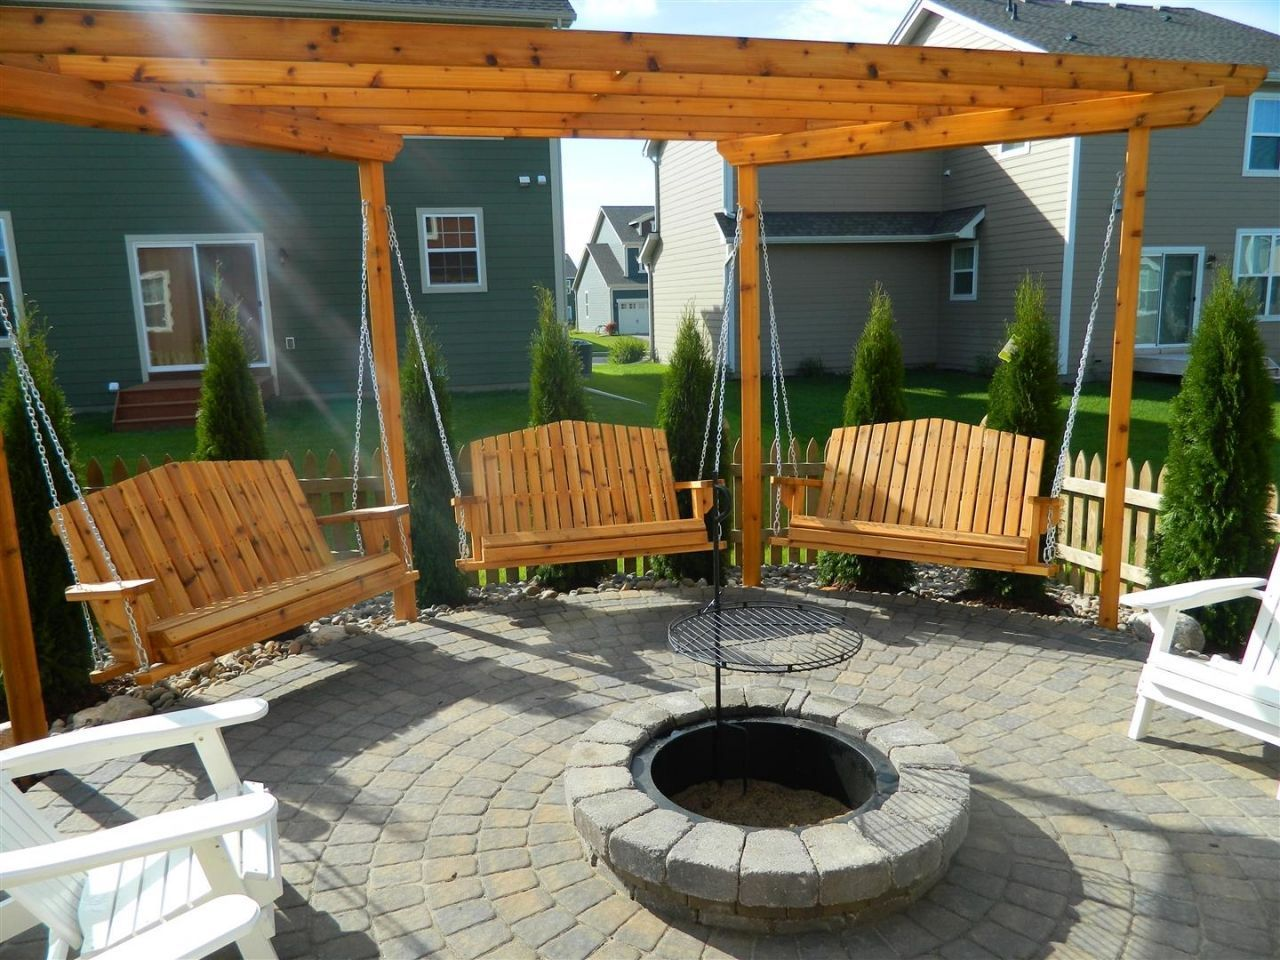 24 Wonderful Porch Swing Fire Pit for Your Garden https://www.possibledecor - 24 Wonderful Porch Swing Fire Pit For Your Garden Gardening